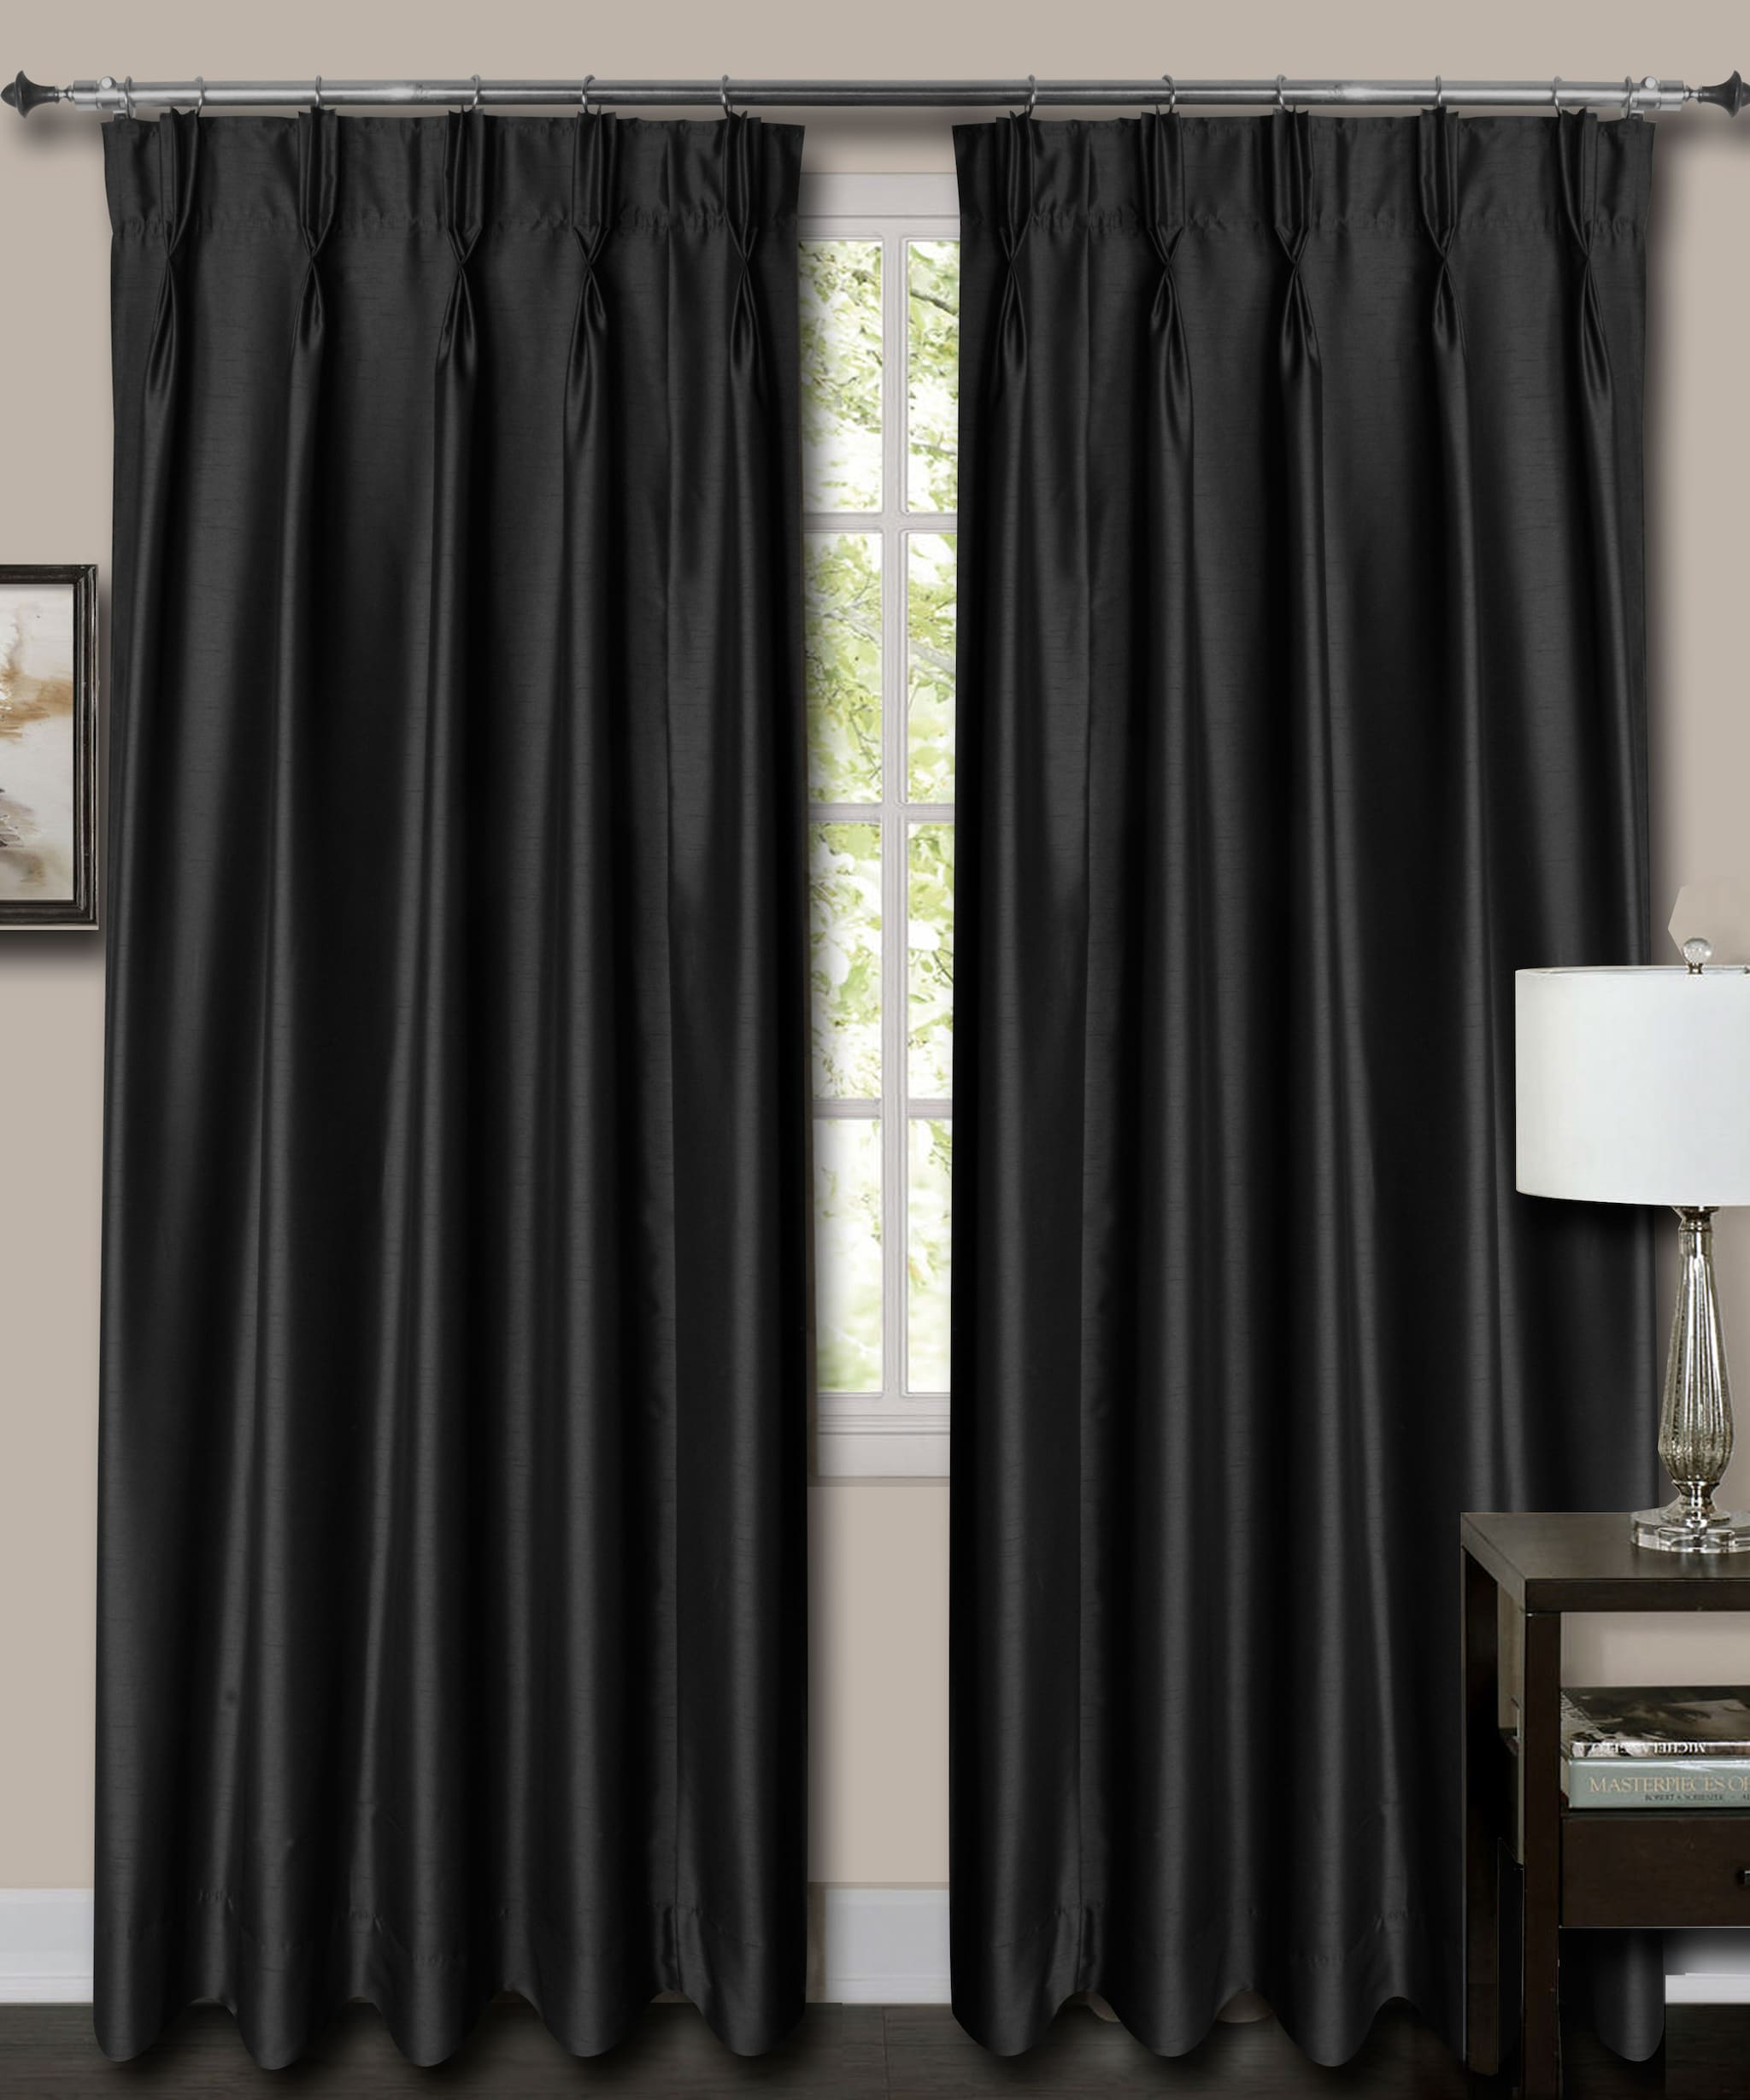 """French Pleat Top Black Faux Silk Dupioni Curtains. (24"""" Wide,8 Feet Long,Blackout Lining)"""